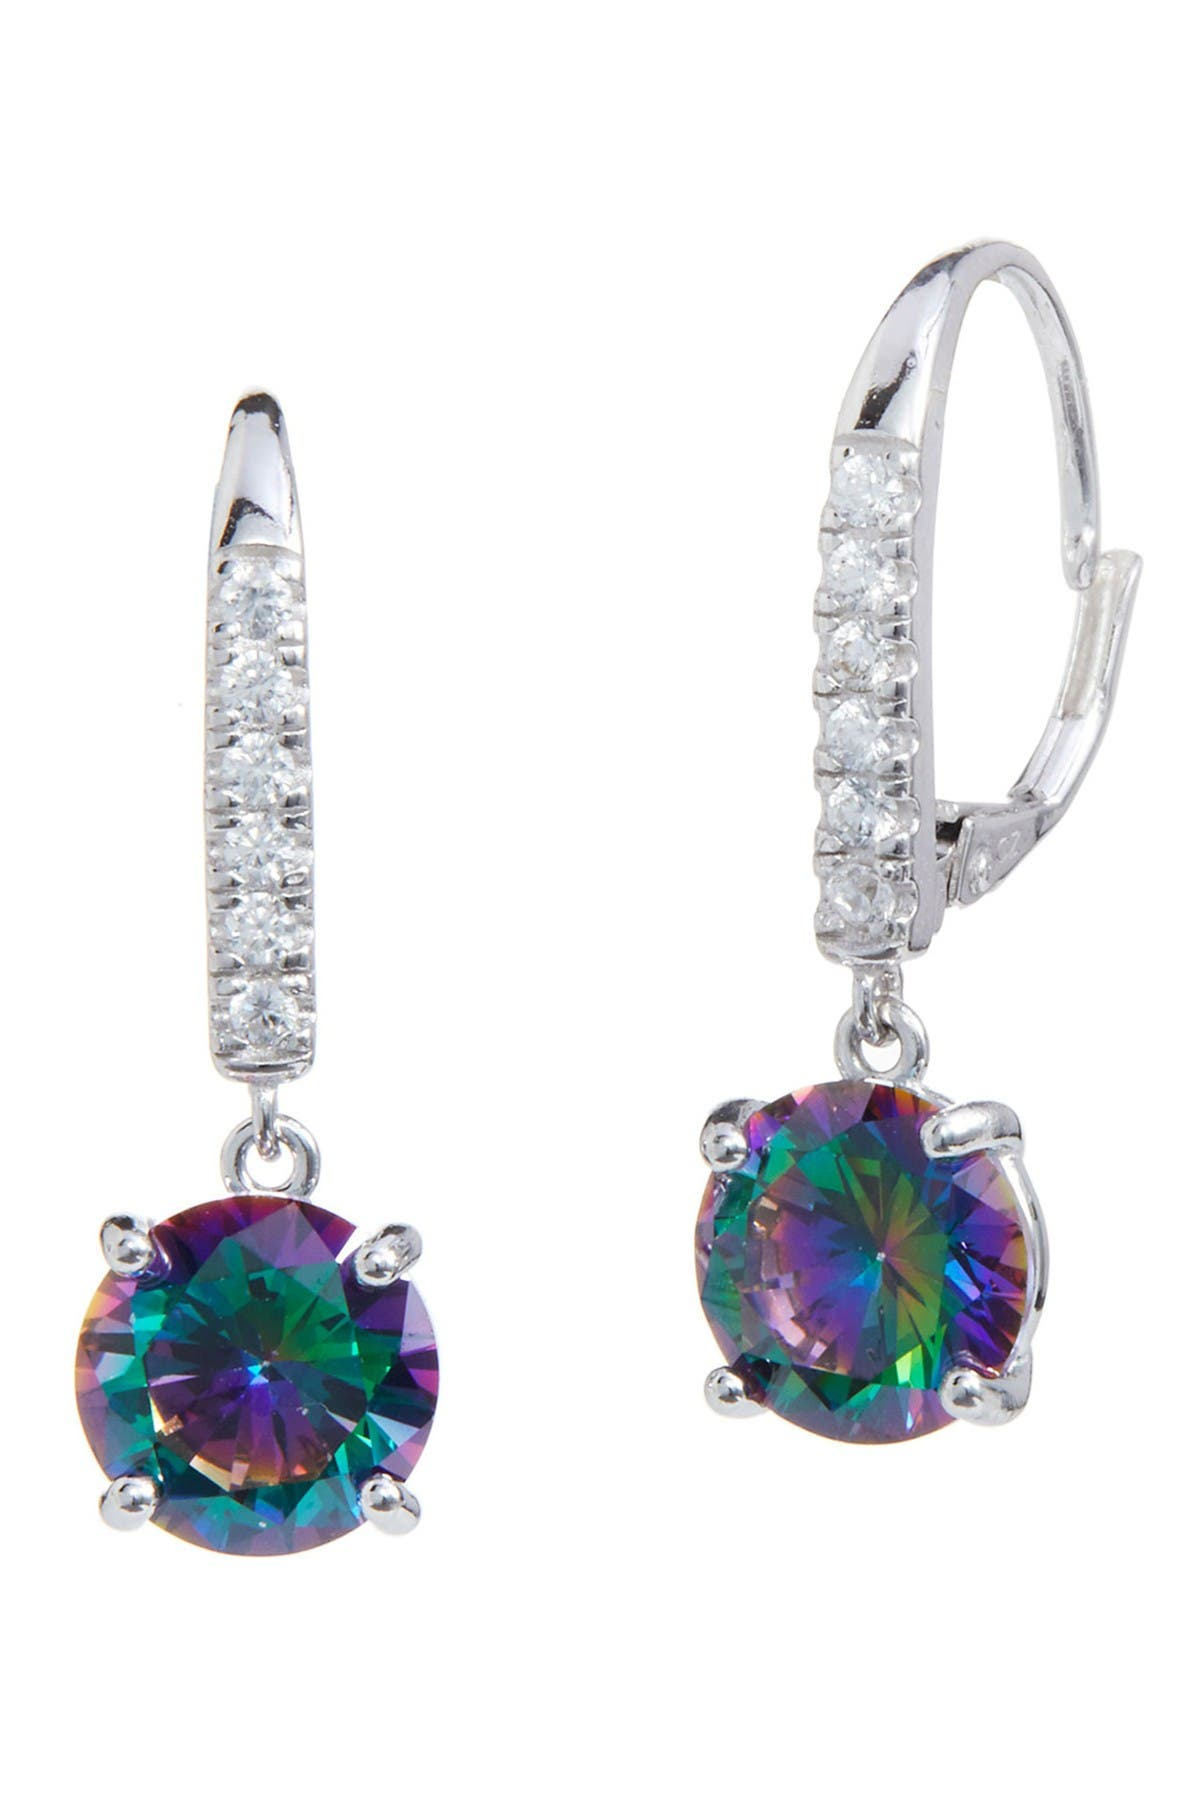 Image of Savvy Cie Sterling Silver Mystic Topaz & CZ Drop Earrings